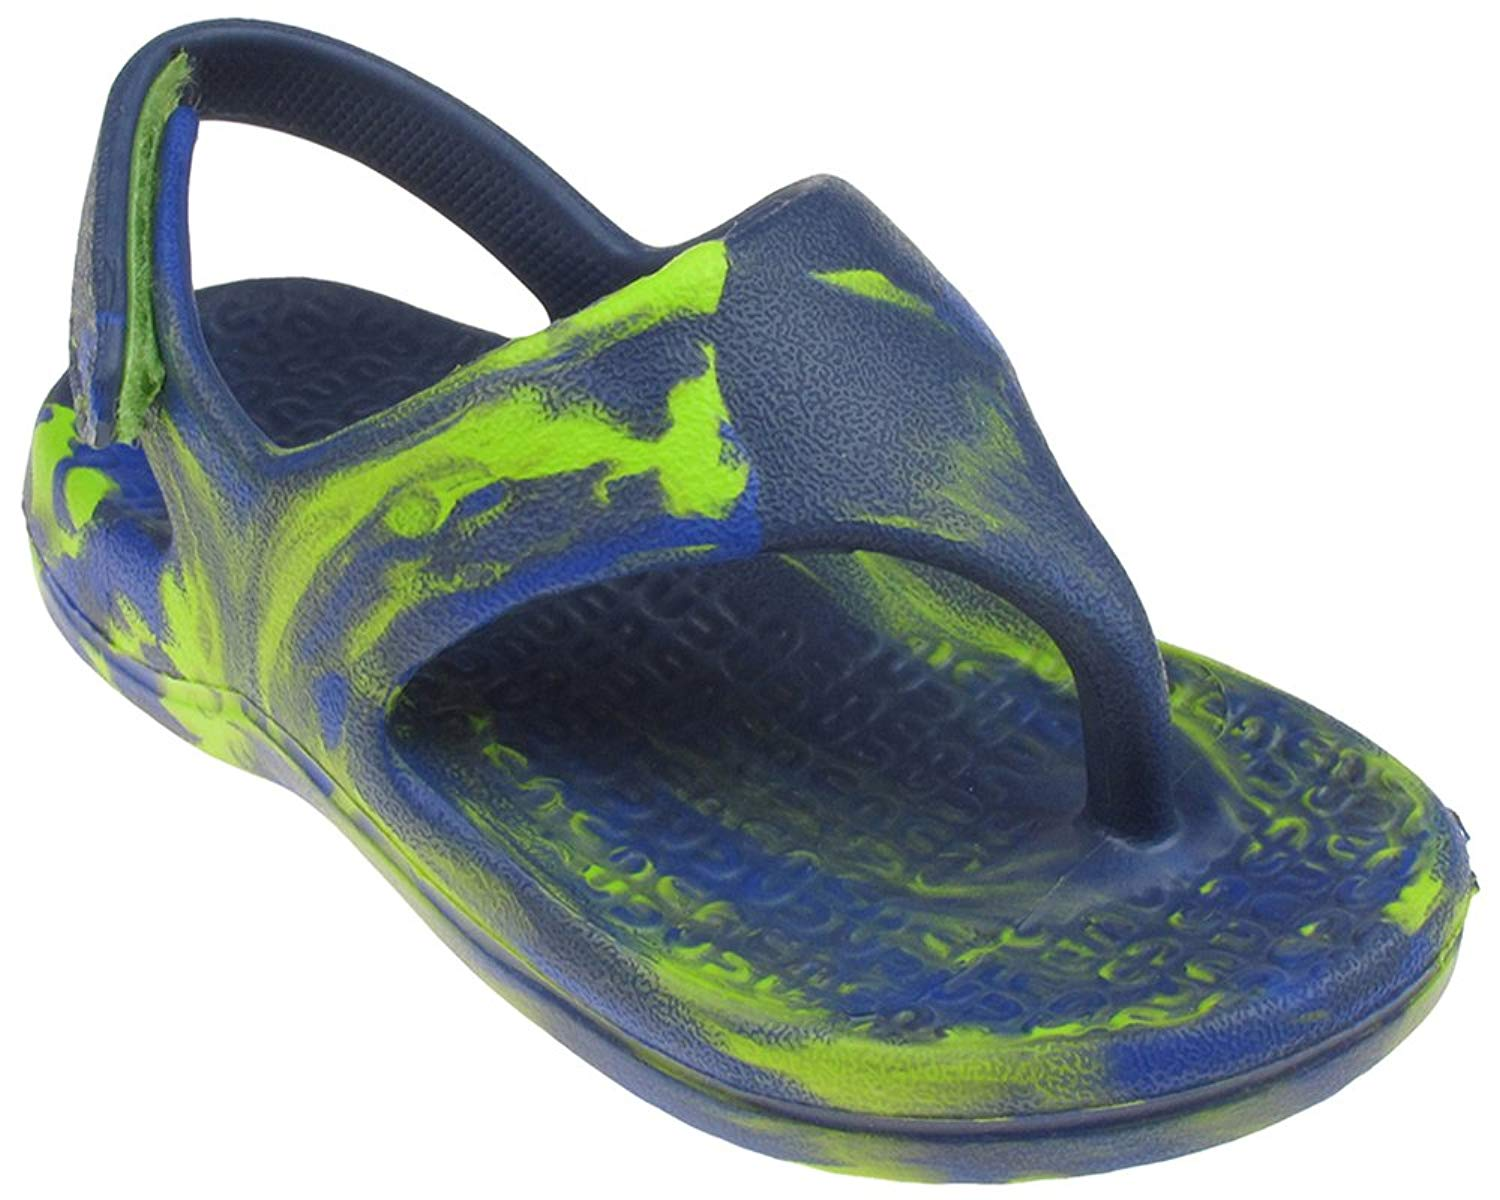 Capelli New York Tie Dye Toddler Boys Clog Sandal Thong With Back Strap